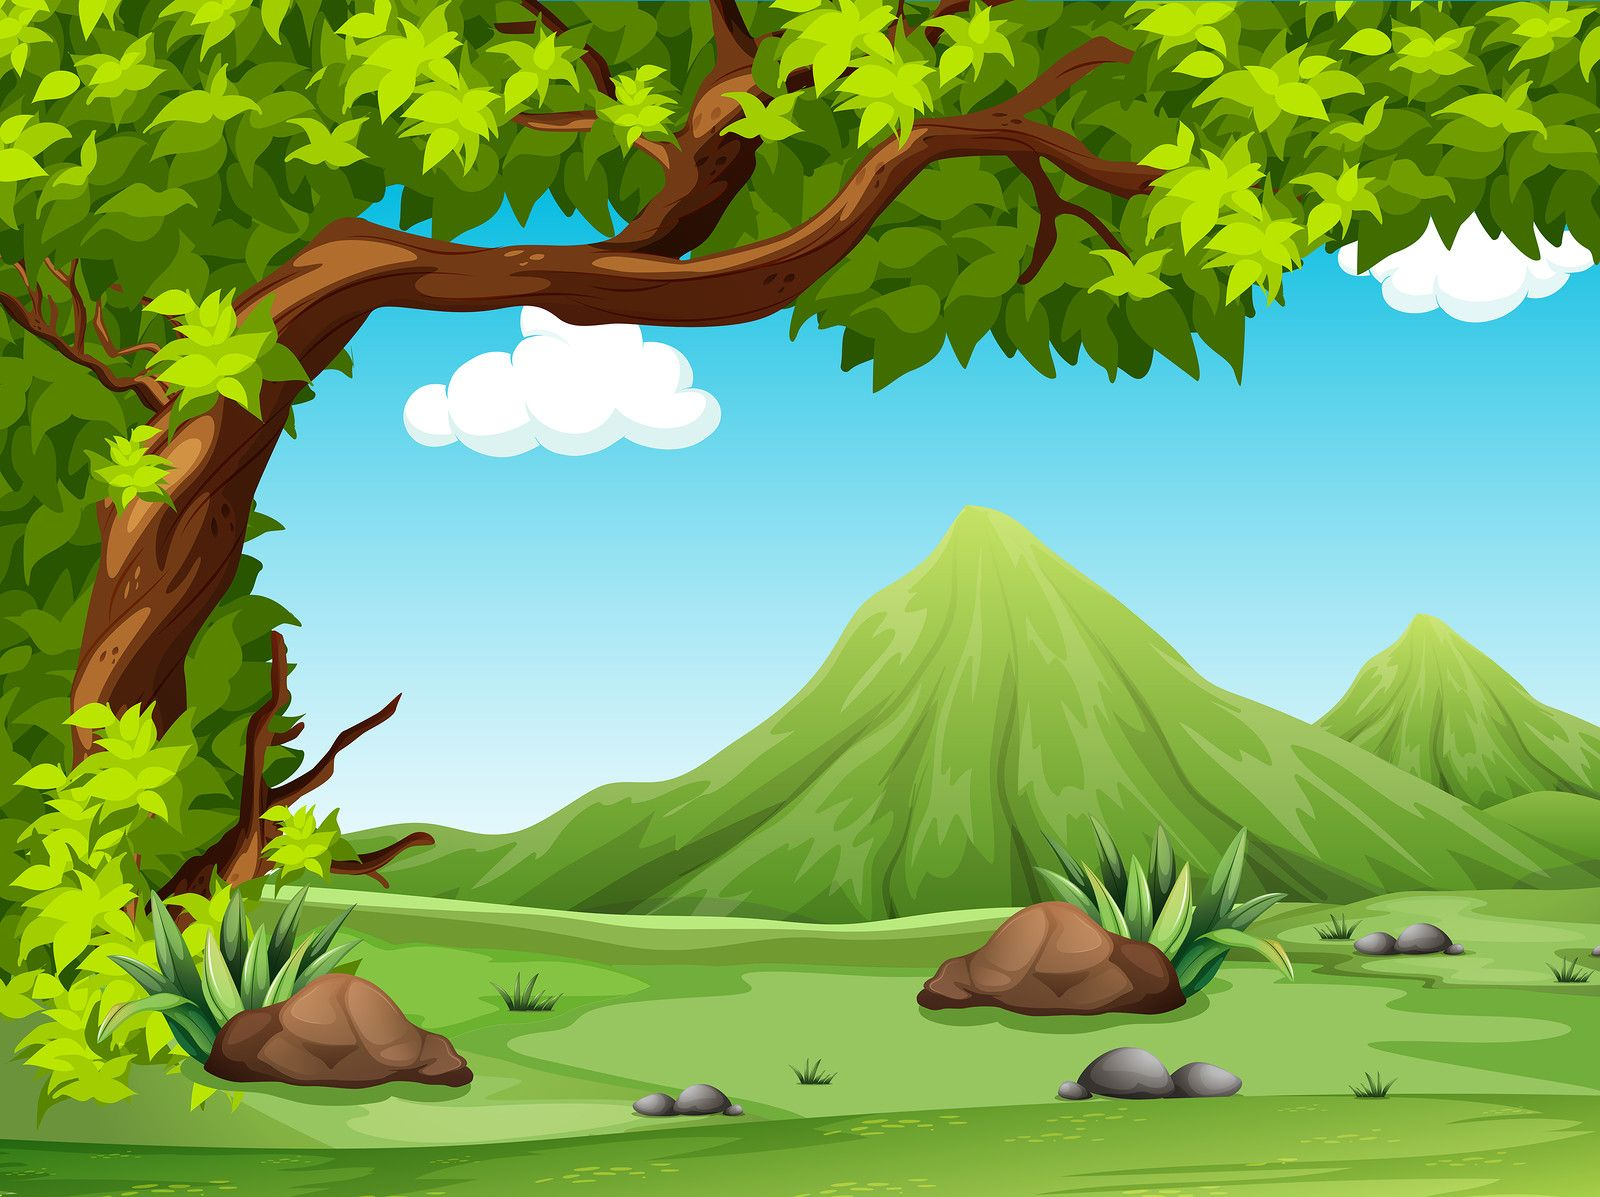 Pin by siddharth on. Hill clipart park landscape